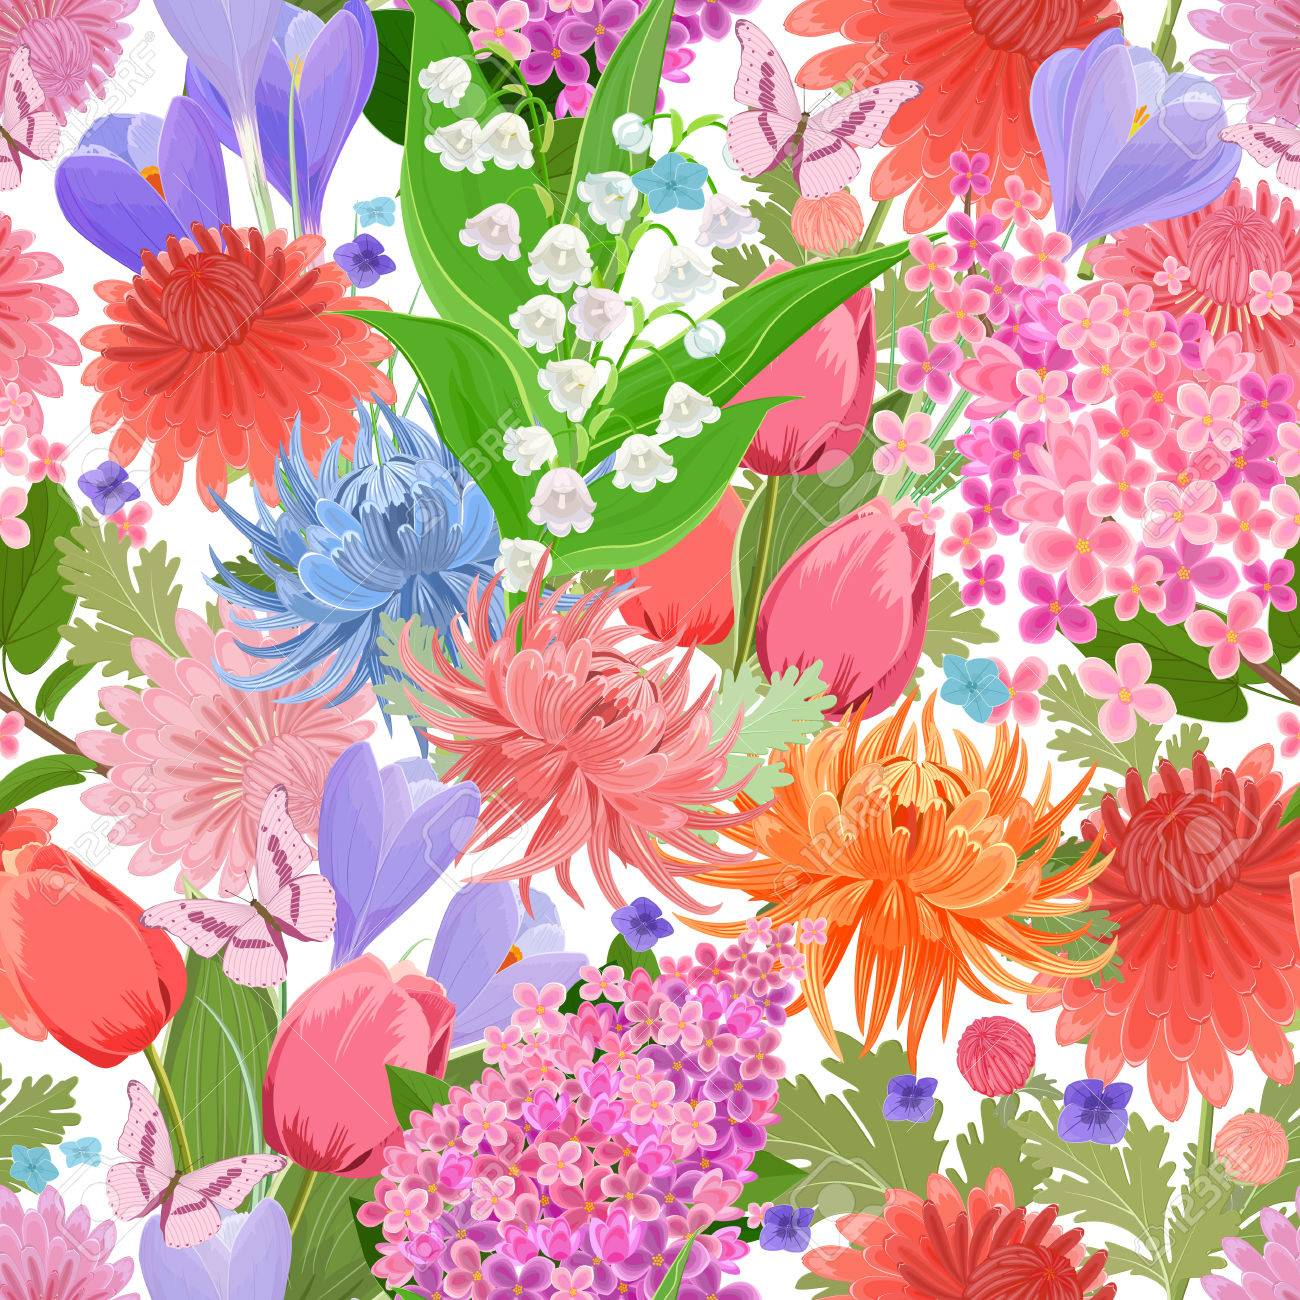 Colorful Seamless Texture With Spring Flowers And Butterflies